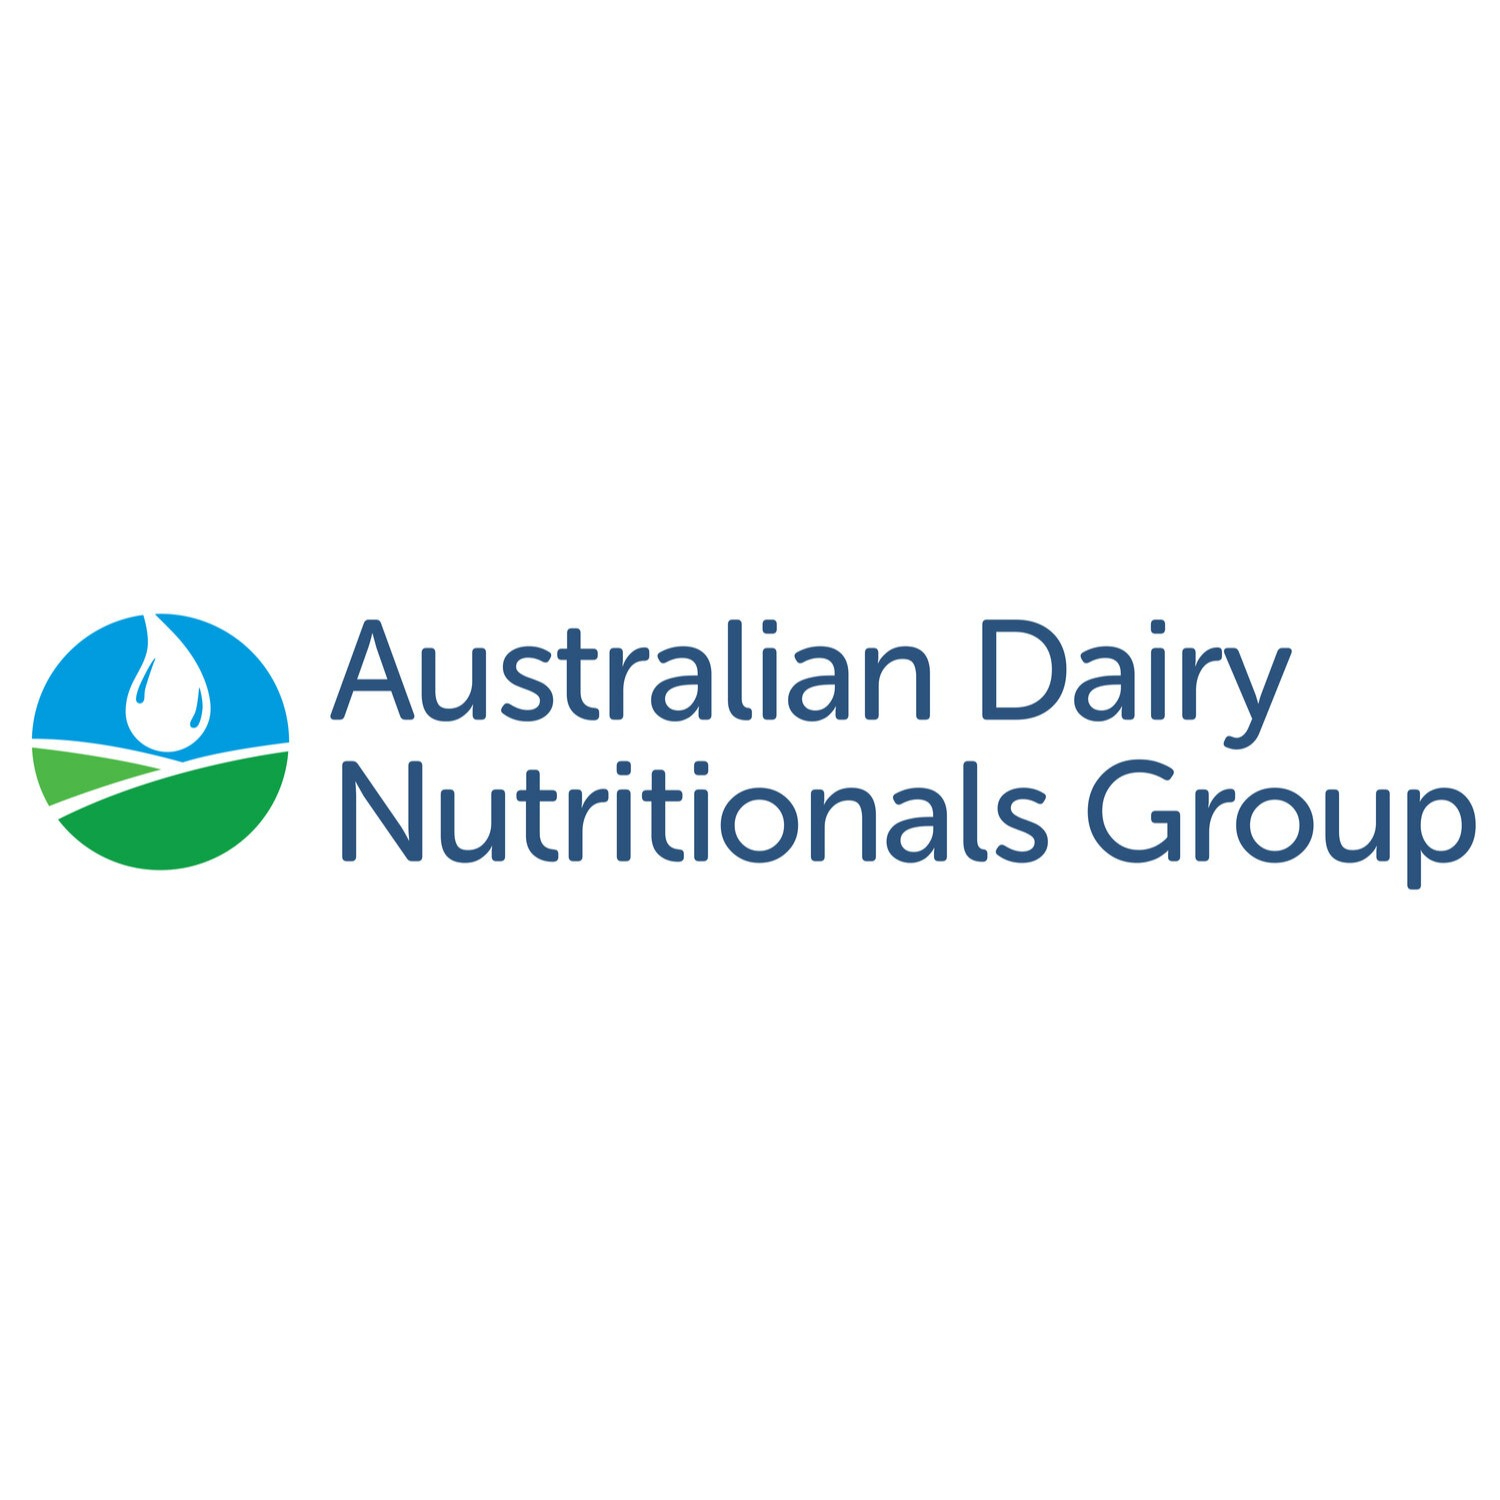 Australian Dairy Nutritionals Group